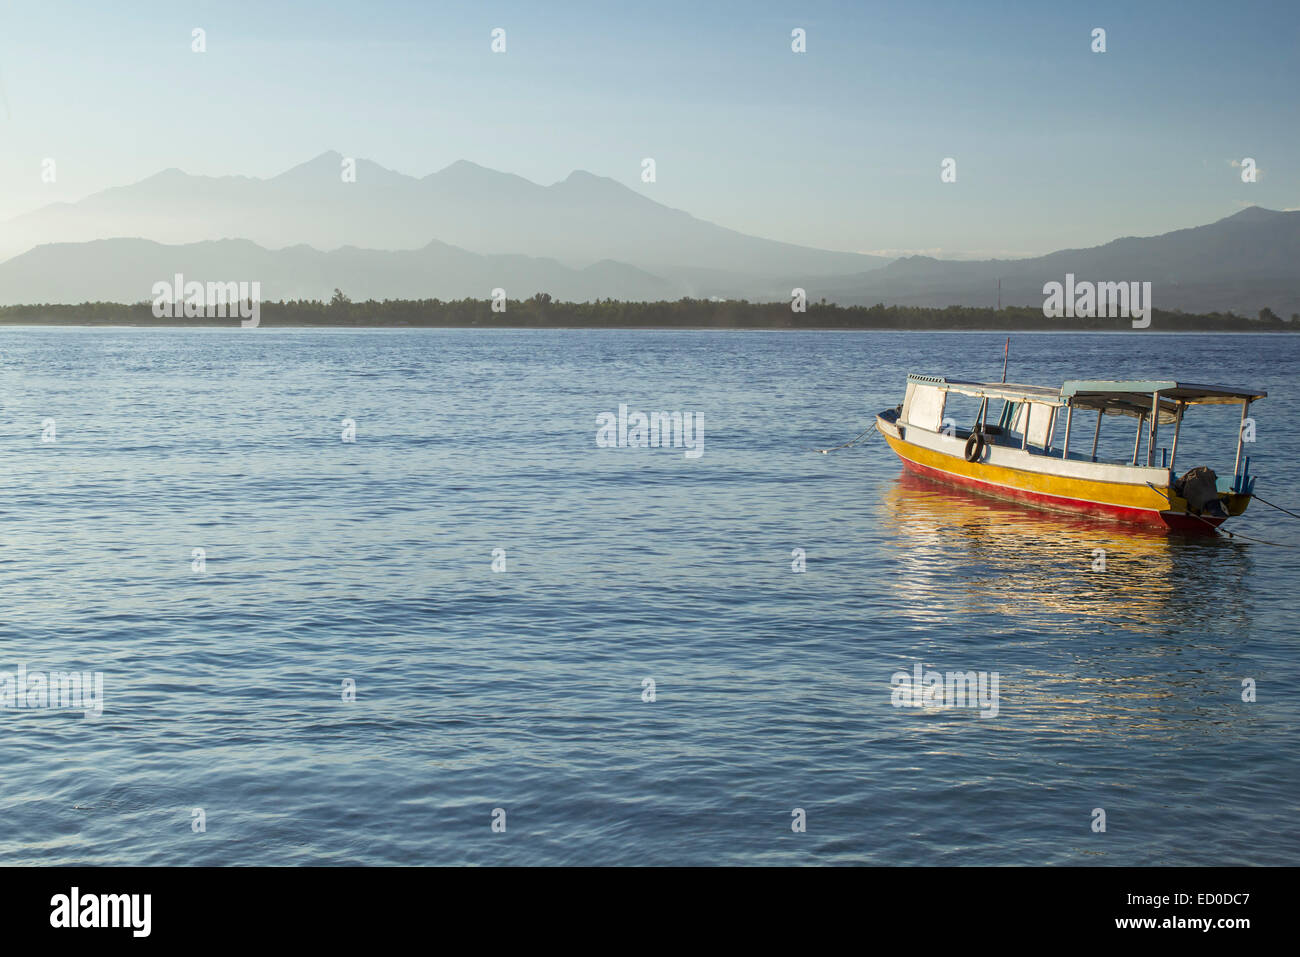 Boat anchored at sea, Mount Rinjani, West Nusa Tenggara, Indonesia Stock Photo